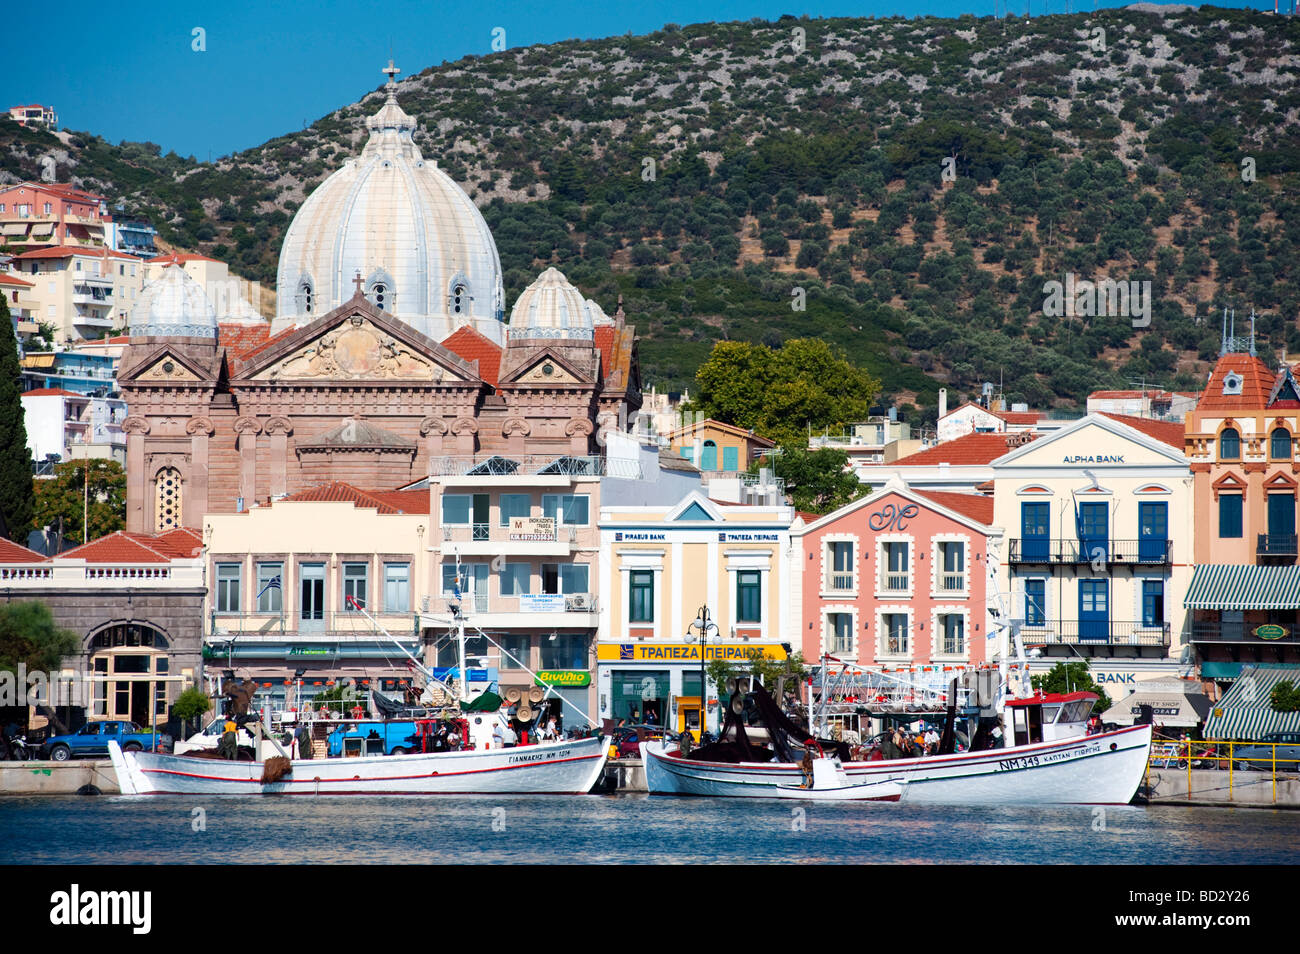 Church and Harbour in Mytilini town on Lesvos Island in Greece - Stock Image